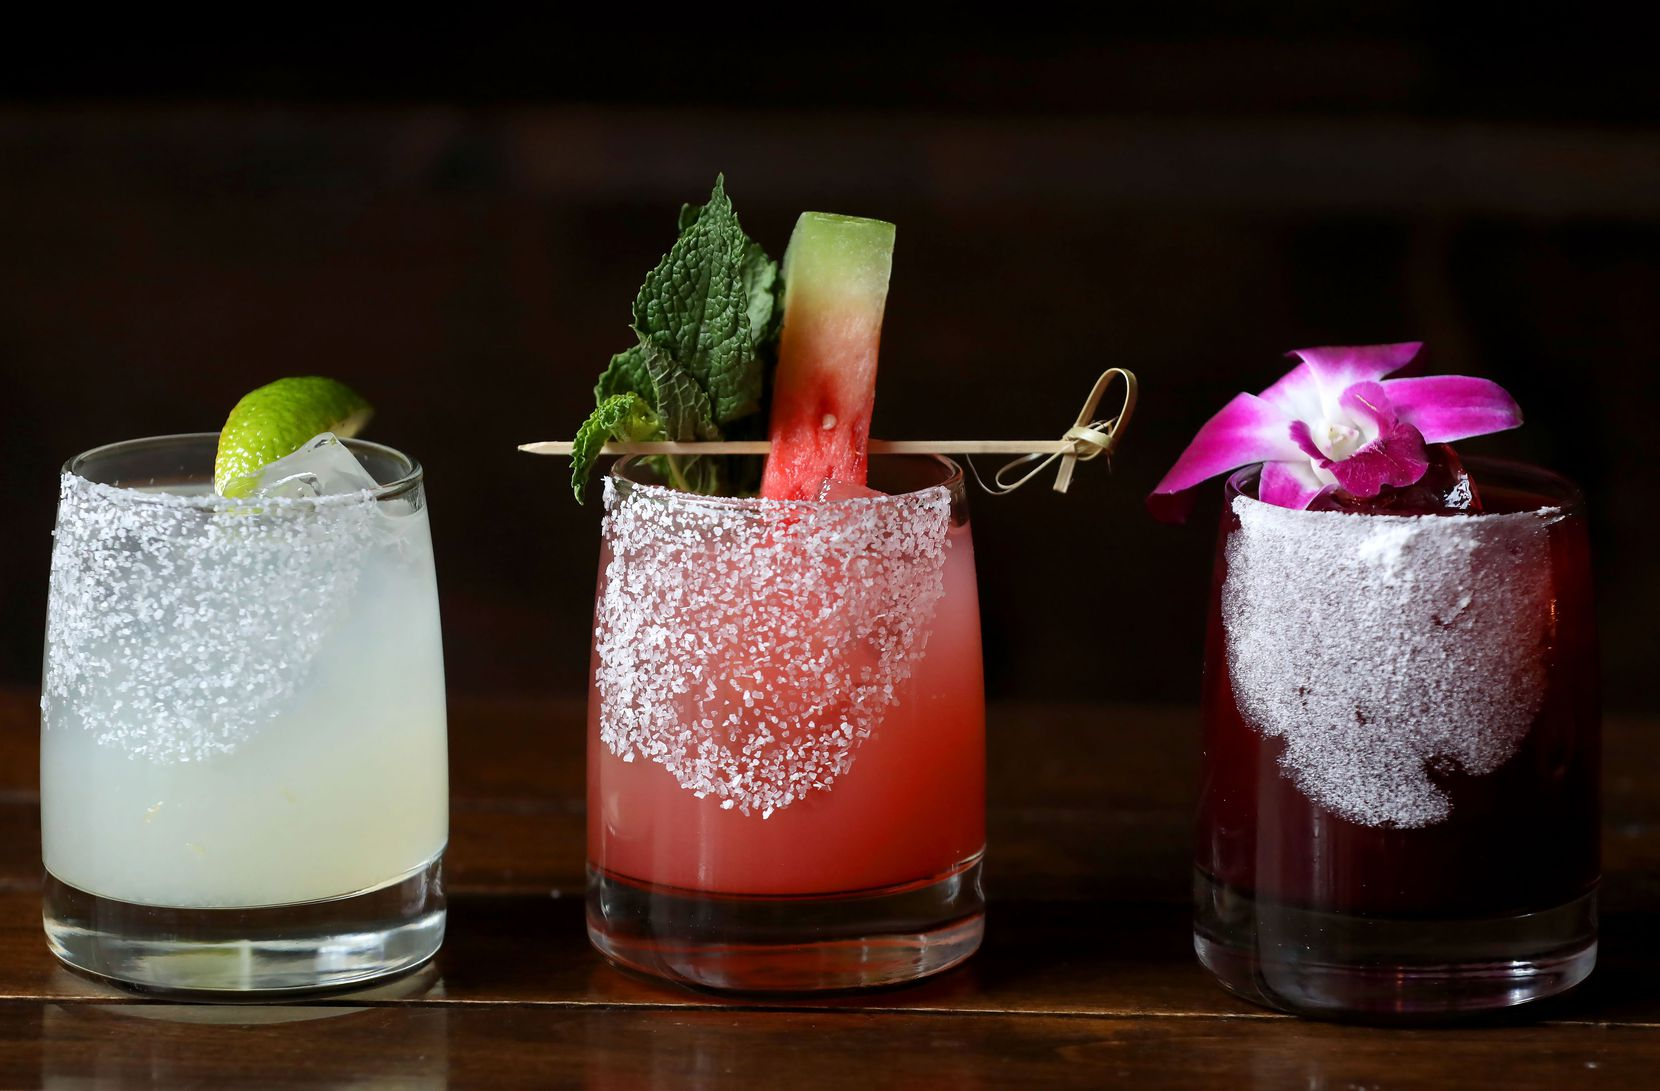 From left, the classic margarita, the Machete, and the hibiscus margarita at Mexican Sugar in Plano. (2019 File Photo)